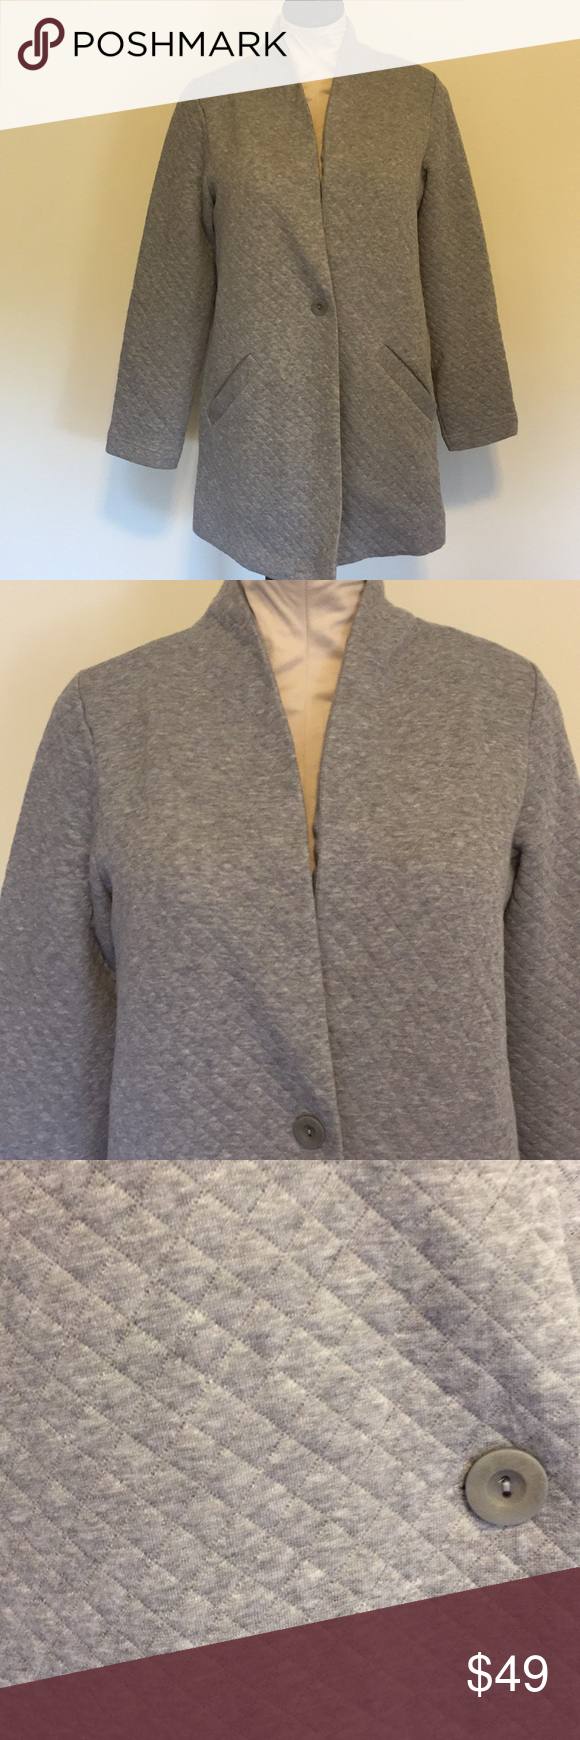 Eileen Fisher Quilted Jacket Quilted Jacket Clothes Design Eileen Fisher [ 1740 x 580 Pixel ]